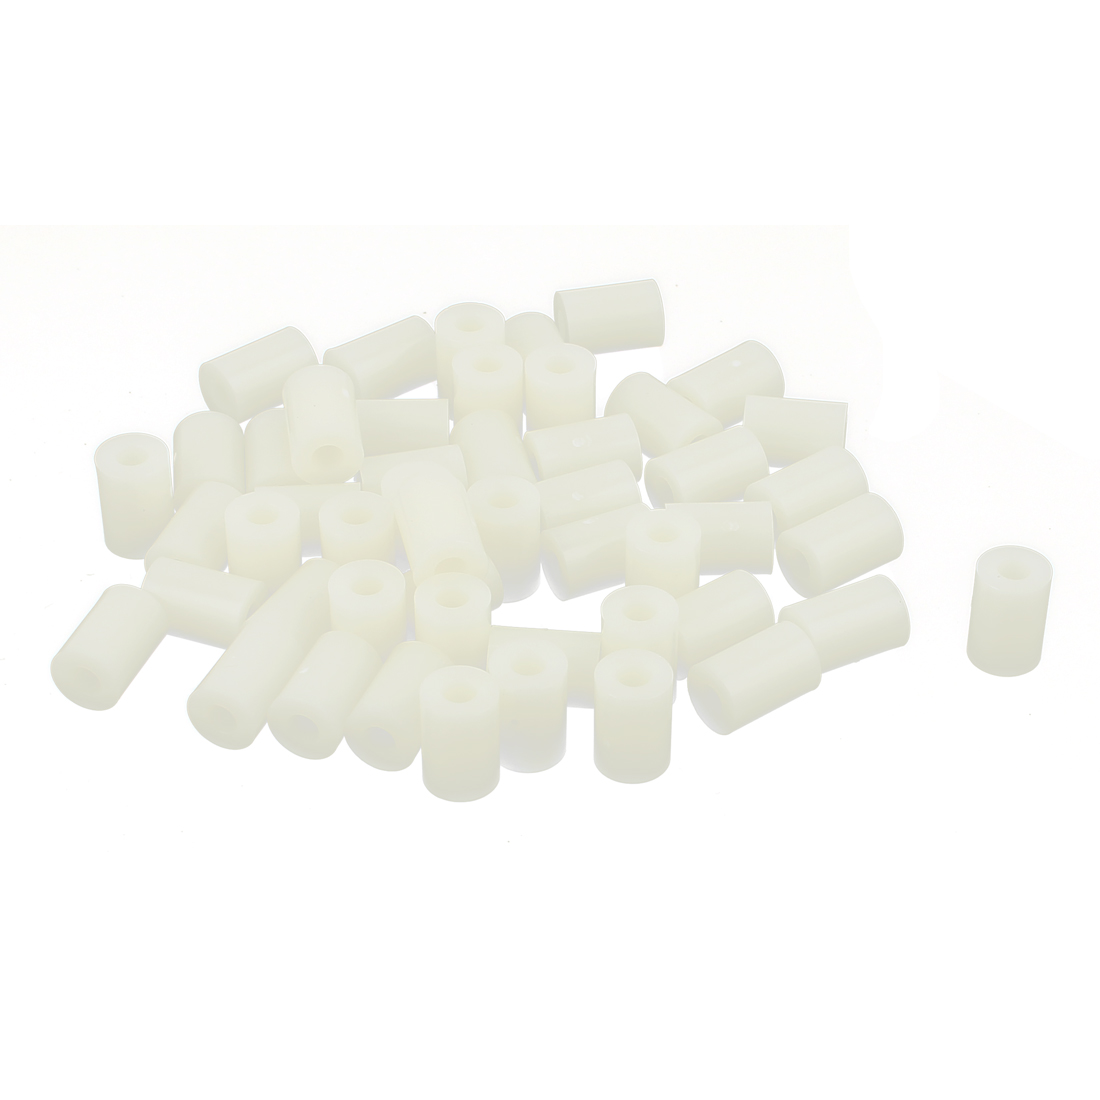 Plastic Cylinder Spacers Washers 7mm x 4.2mm x 10mm 50 Pcs Ivory